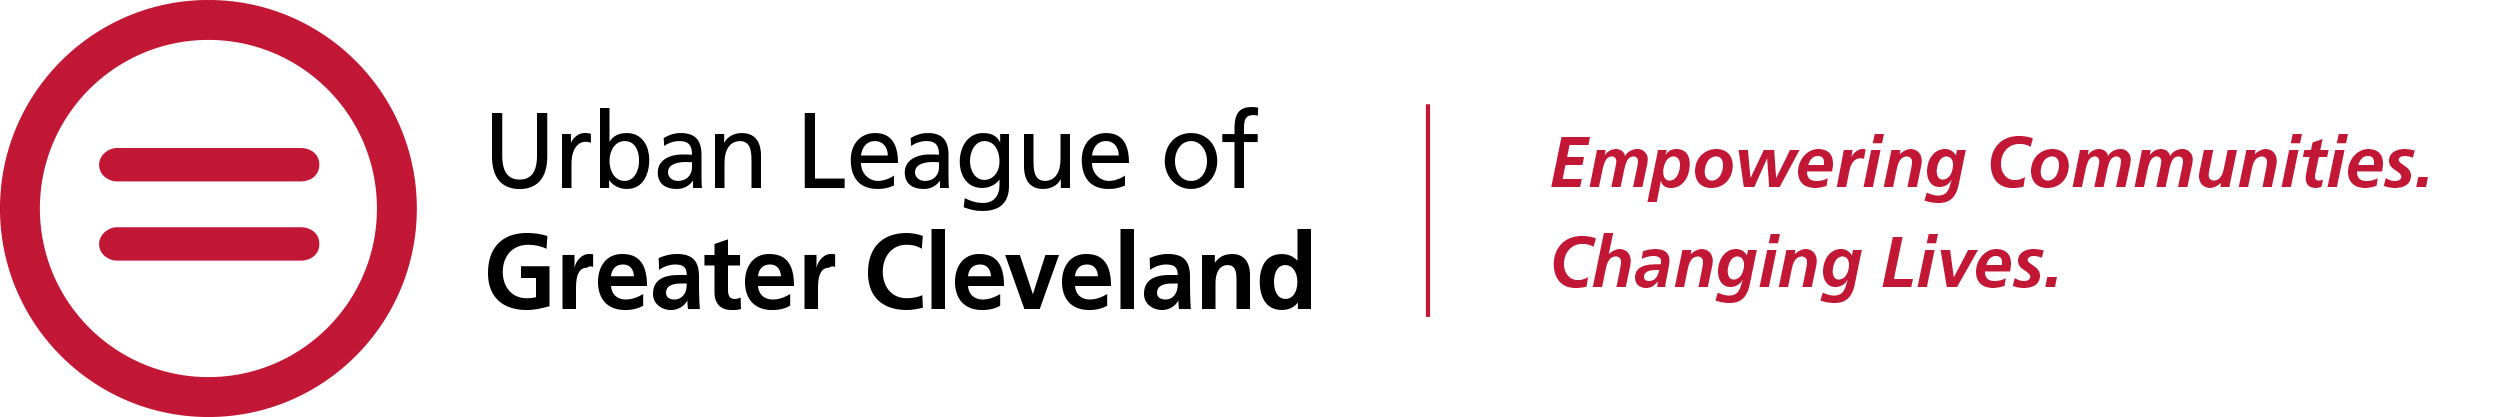 Urban League of Greater Cleveland logo